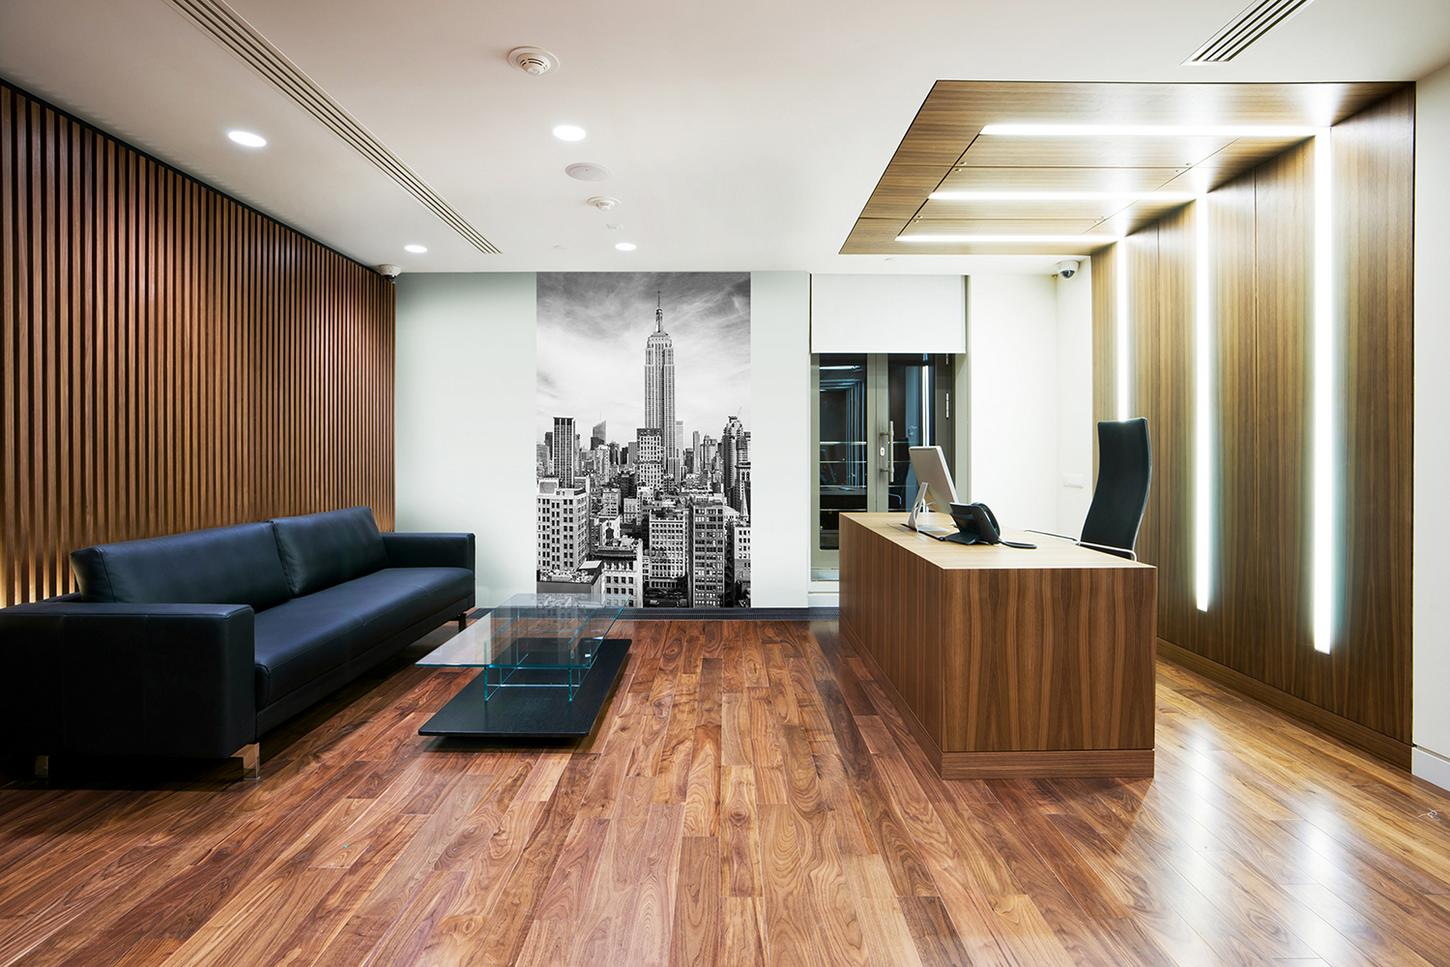 kiss fototapeten zu besten preisen fototapete empire state building 183 x 254 cm new york. Black Bedroom Furniture Sets. Home Design Ideas